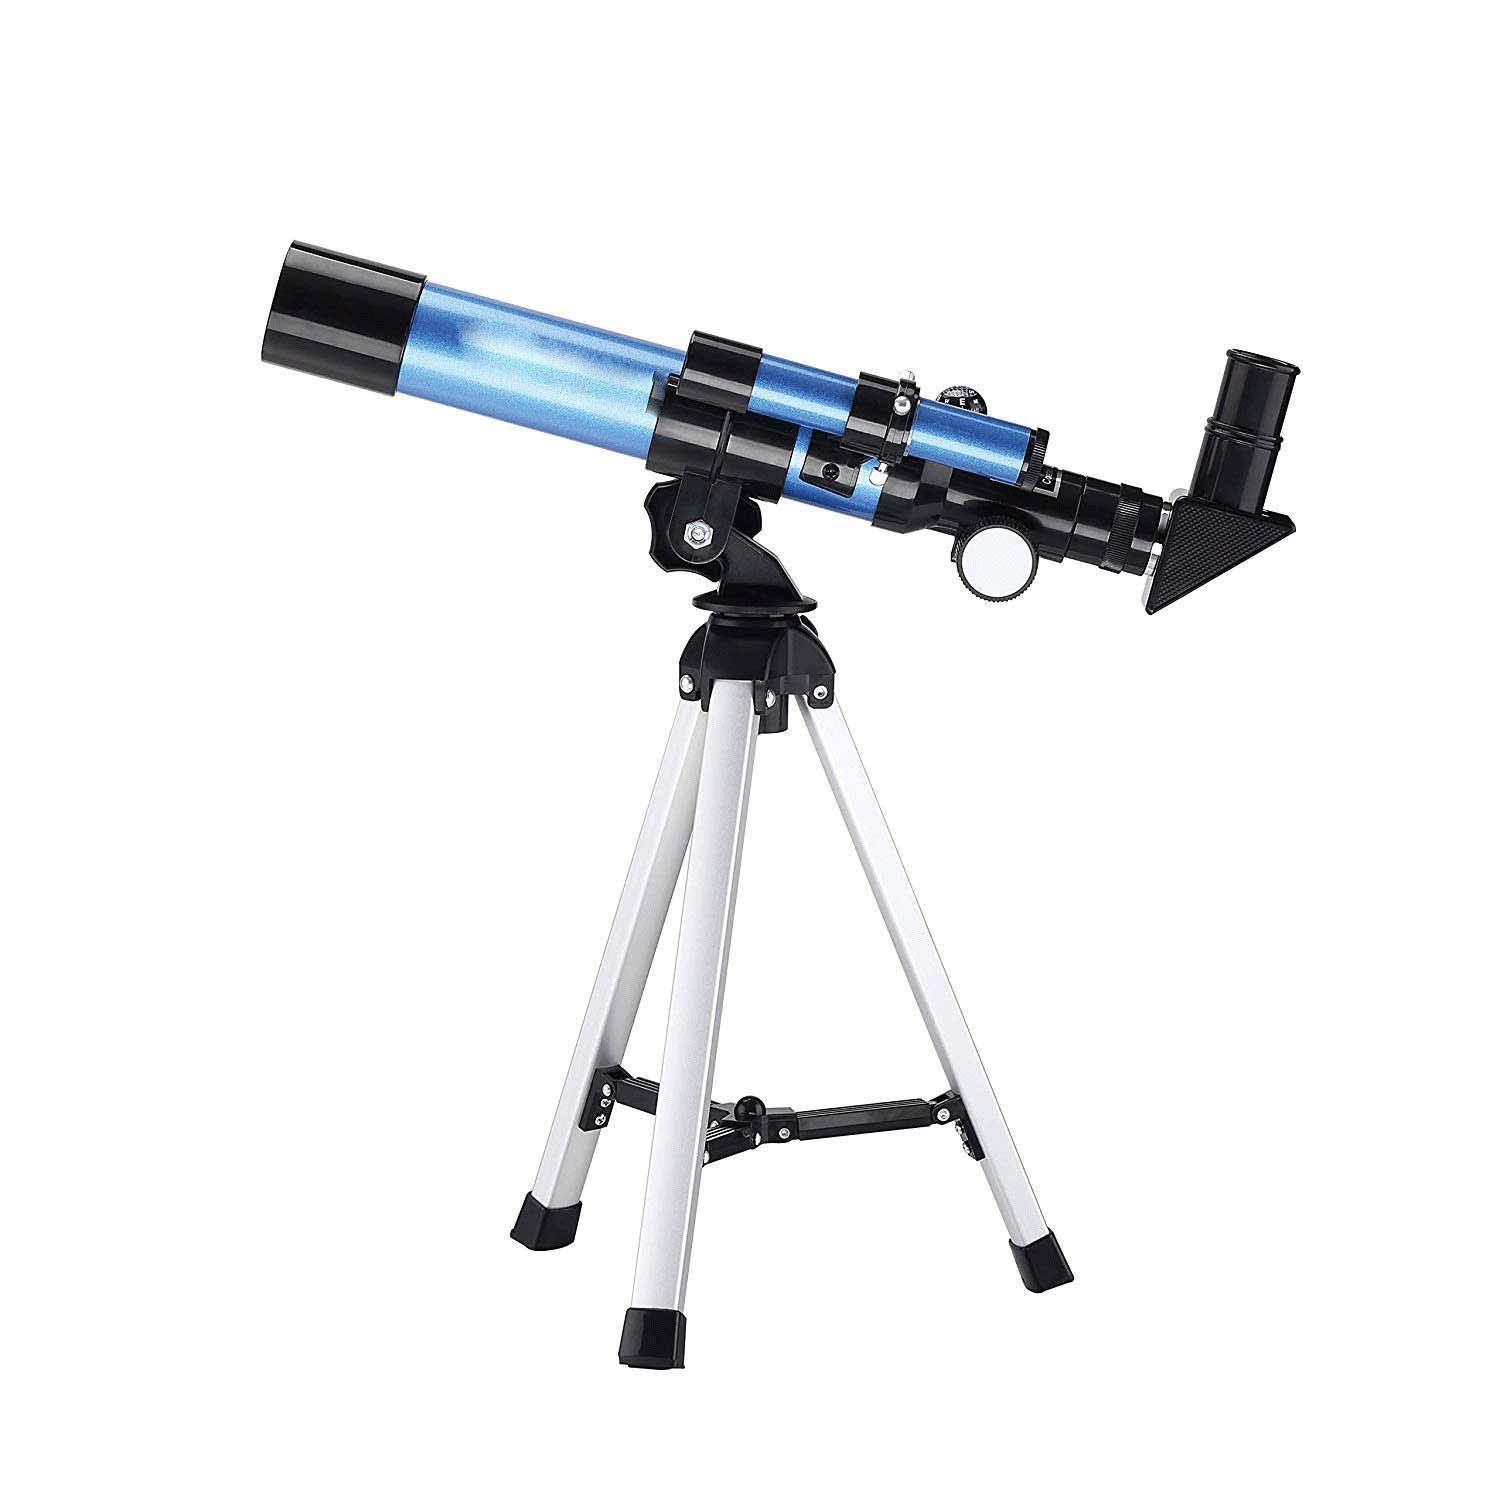 ASSAUU_ Telescope for Kids and Beginners 70mm 400mm AZ Mount - Portable Travel Telescope by ASSAUU_